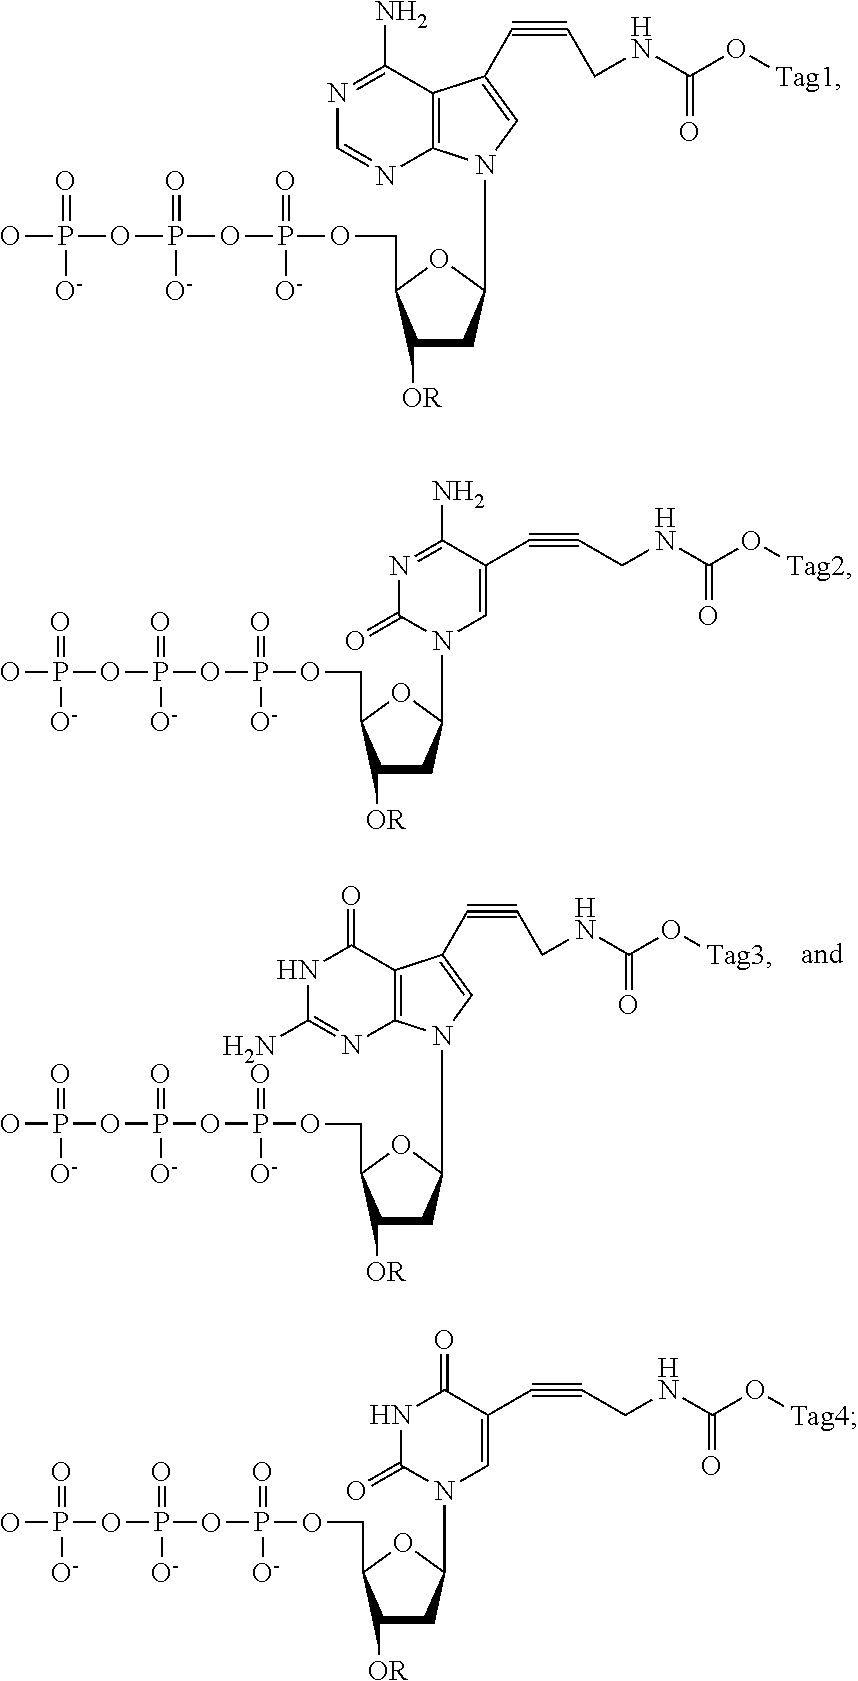 US20120142006A1 - Massive parallel method for decoding dna and rna